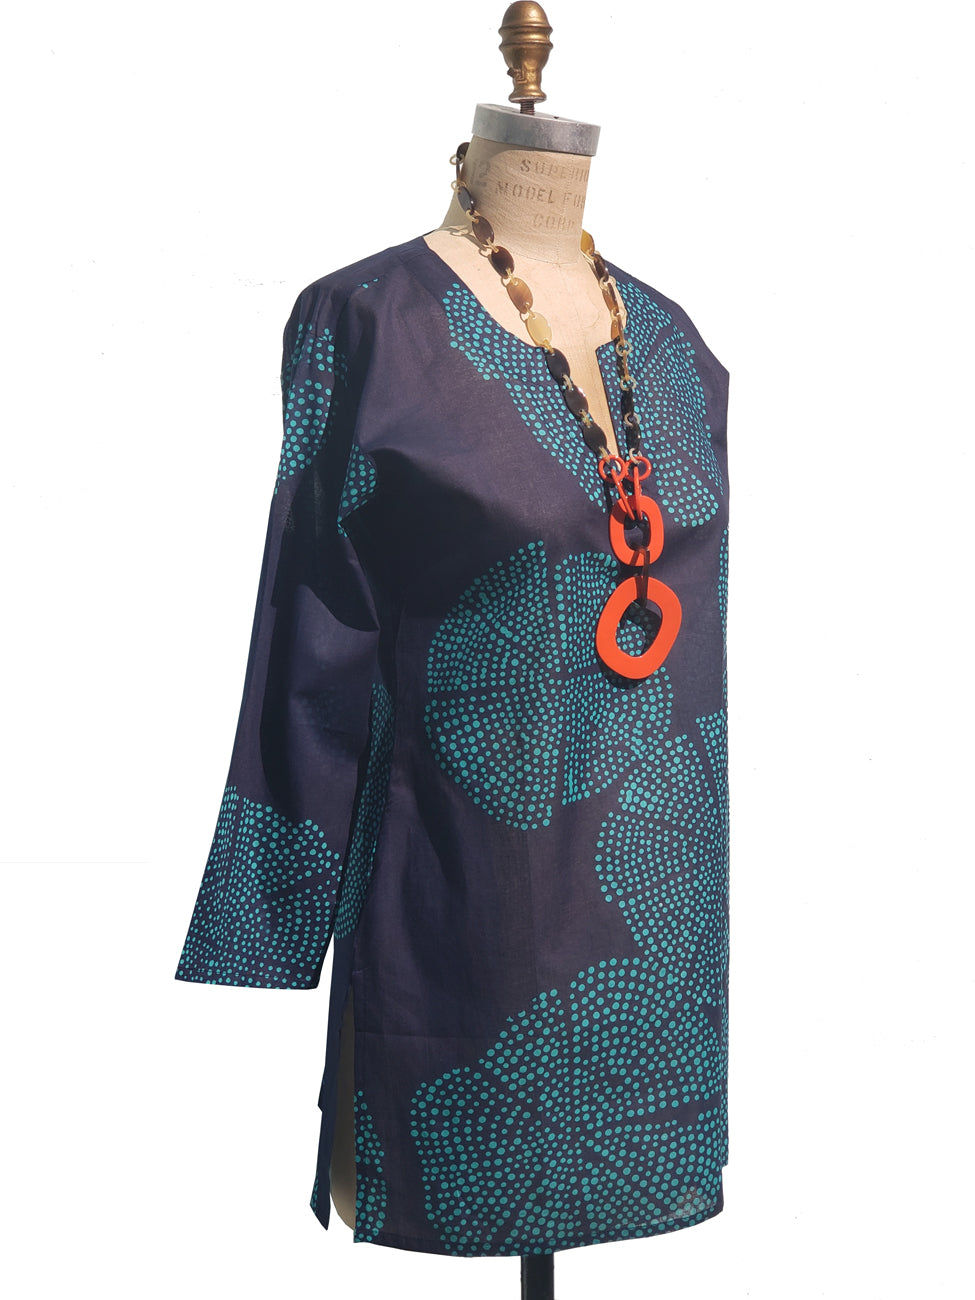 Raja Cotton Tunic Navy Turquoise Polka Dots